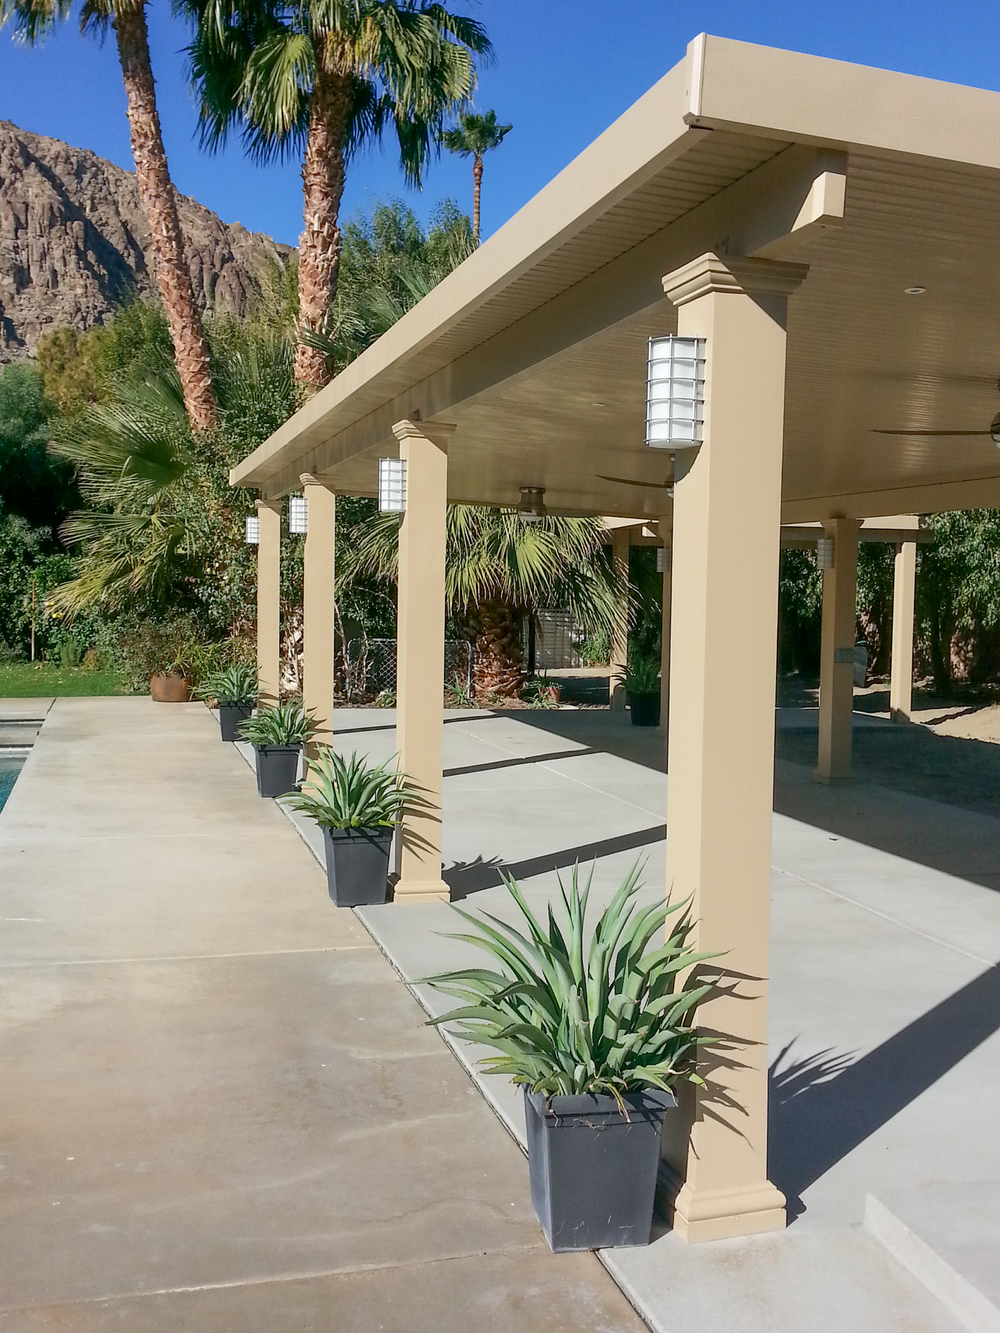 Custom Outdoor Lighting With 8 Inch Square Columns, La Quinta, CA